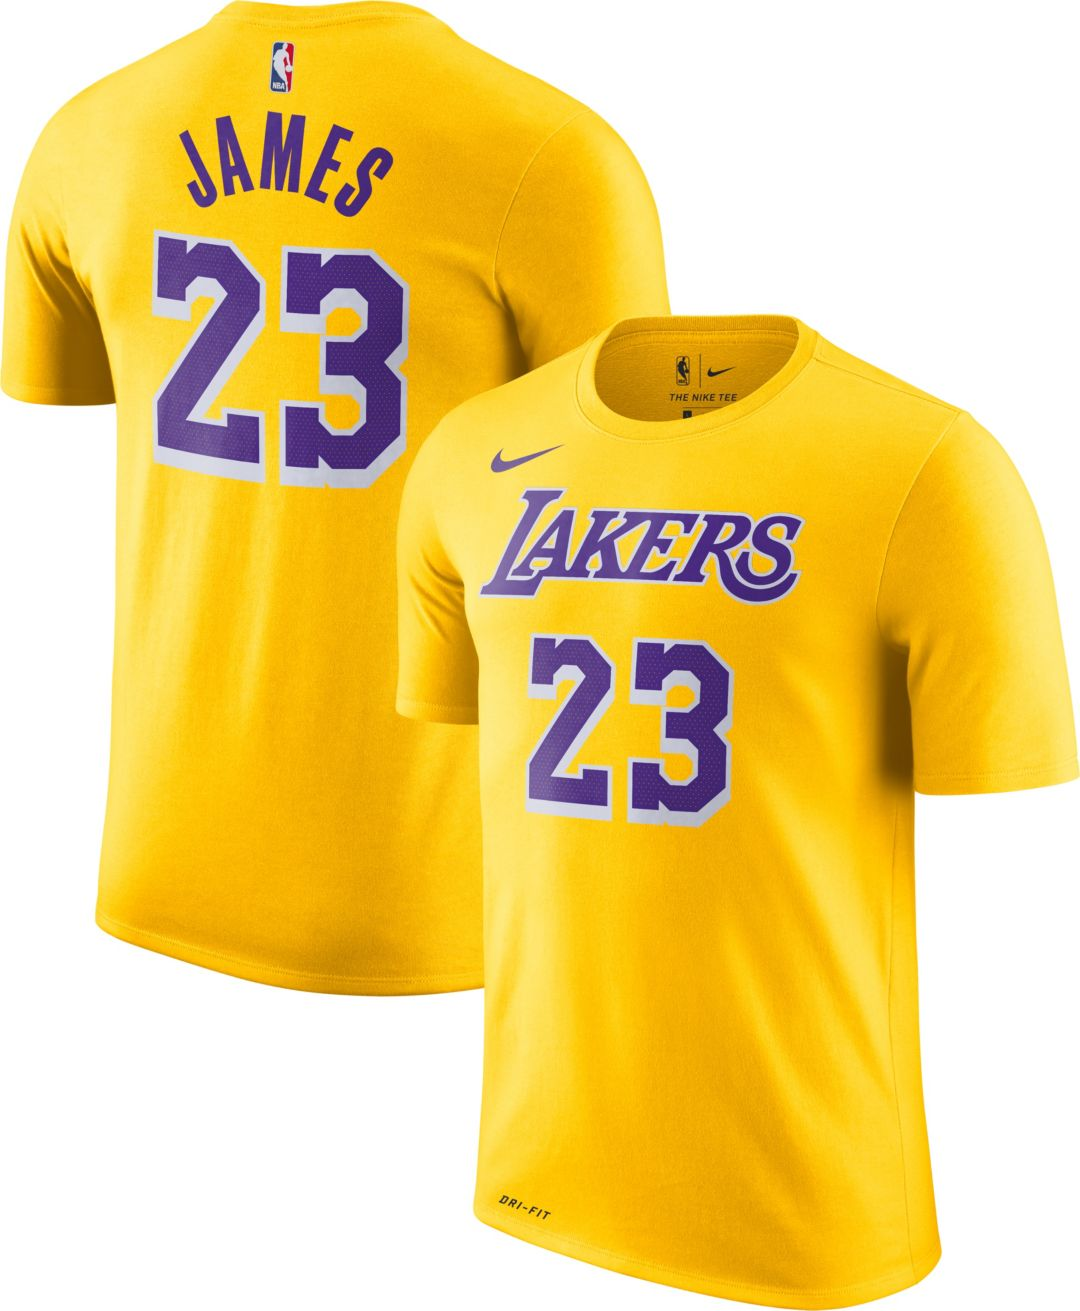 brand new 49fd0 b6209 Nike Youth Los Angeles Lakers LeBron James Dri-FIT Gold T-Shirt